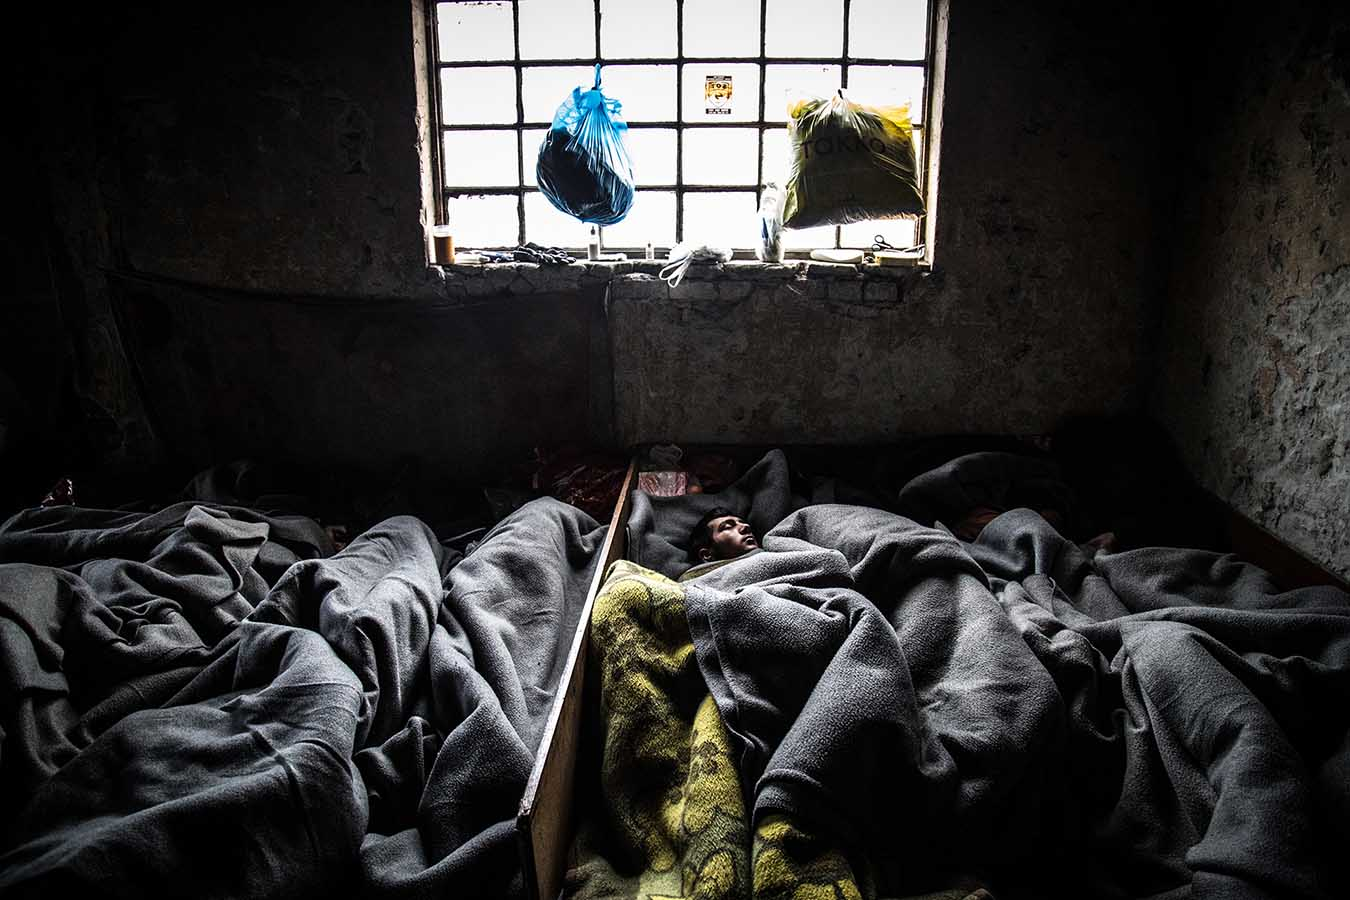 Refugees sleep rough, inside one of the abandoned warehouses in the area of Belgrade's central station, where nearly 1,300 have found refuge from the harsh Serbian winter as they way to cross into Northern and Central Europe.